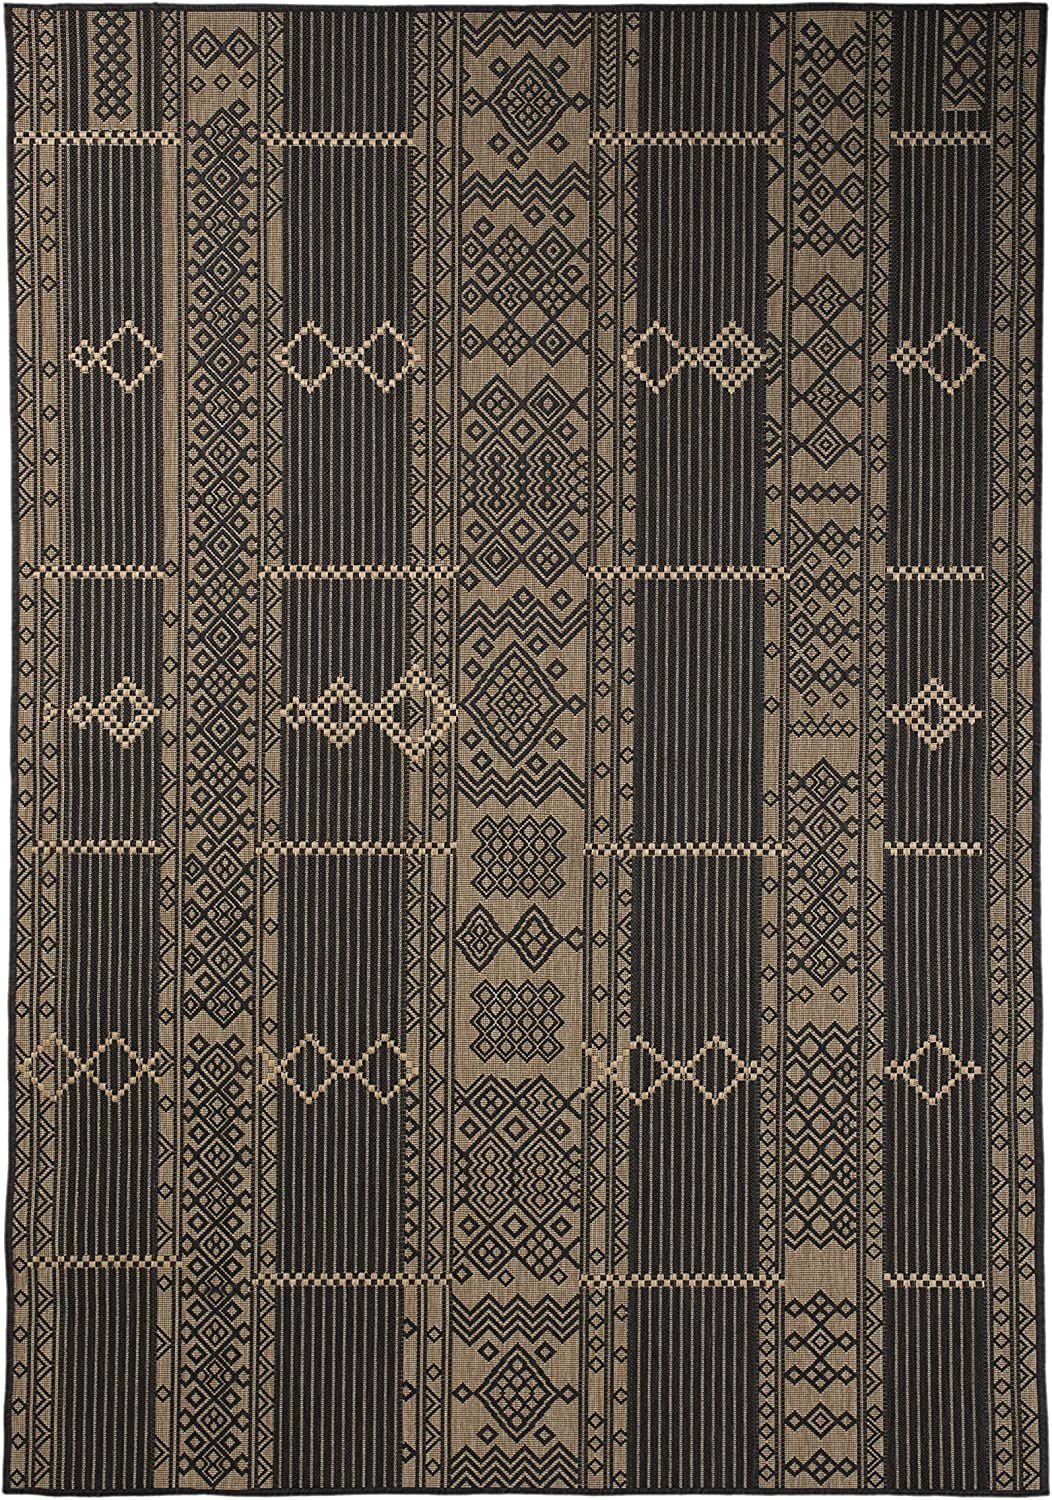 Our shop OFFers the best service All stores are sold Furnish My Place Outdoor Collection Geometric Pattern 7 Rug - ft